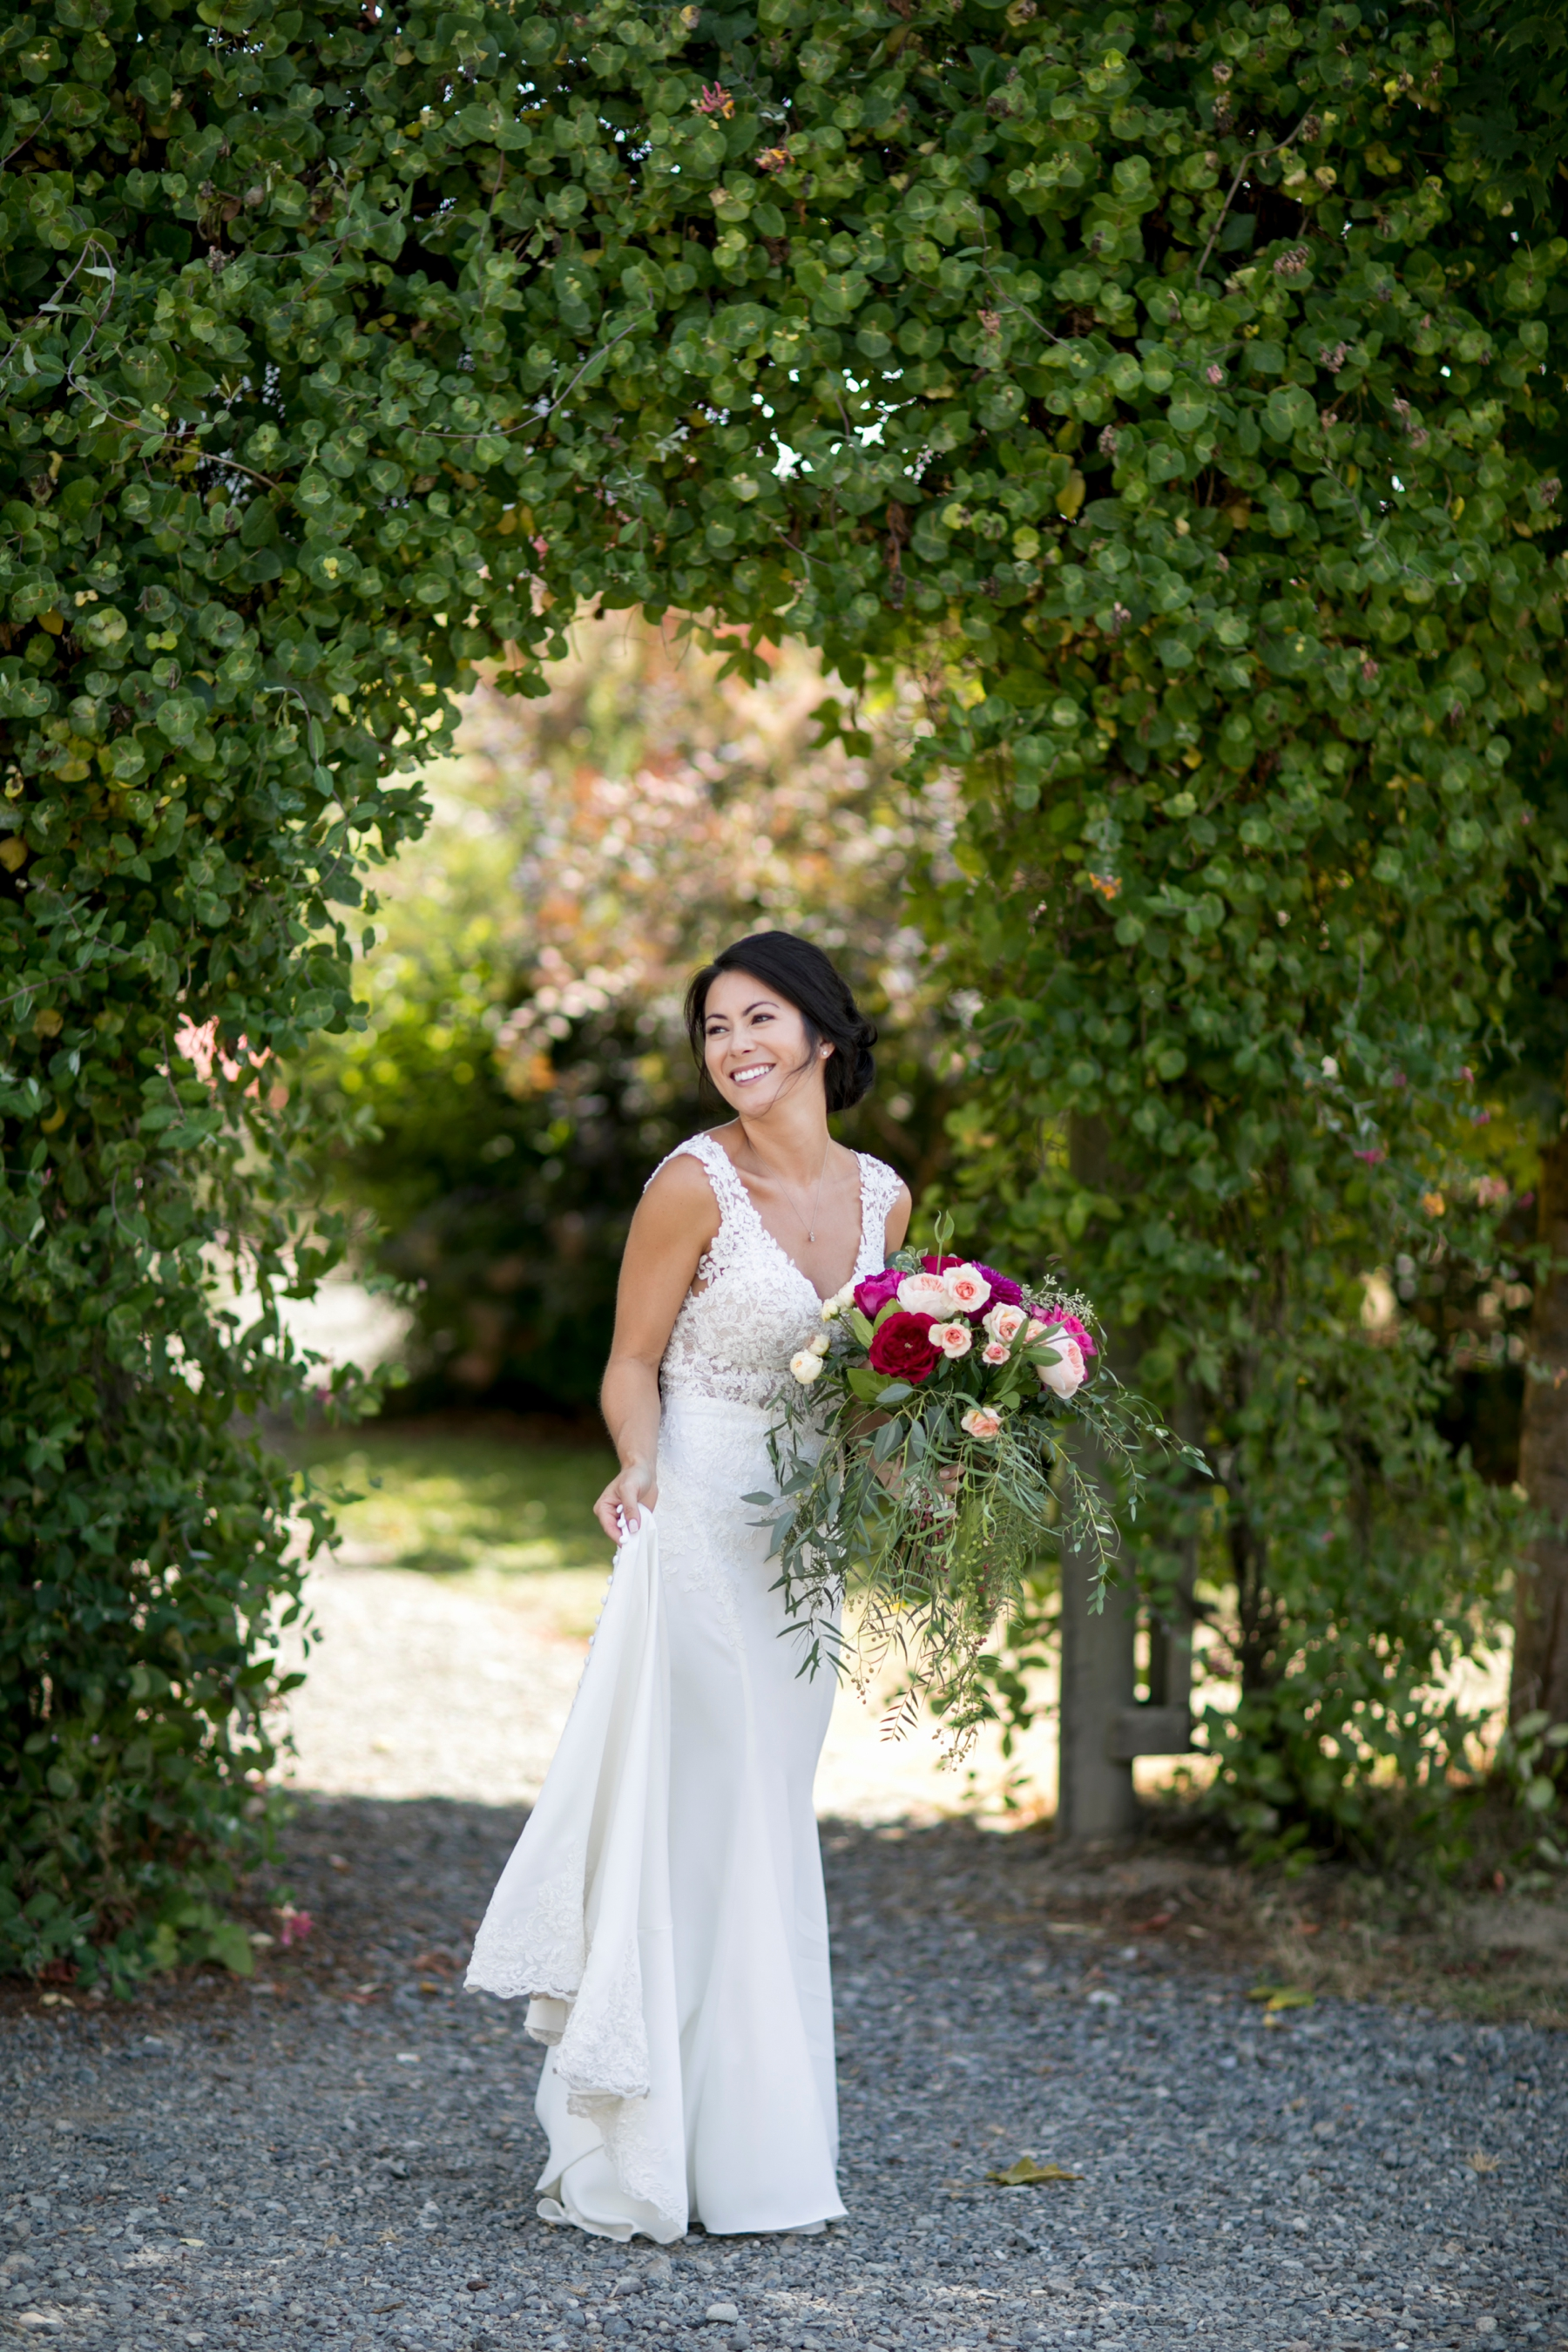 seatte, wedding, photographer, North Bend, Bybee Farms, Snoqualmie, issaqua,_0030.jpg